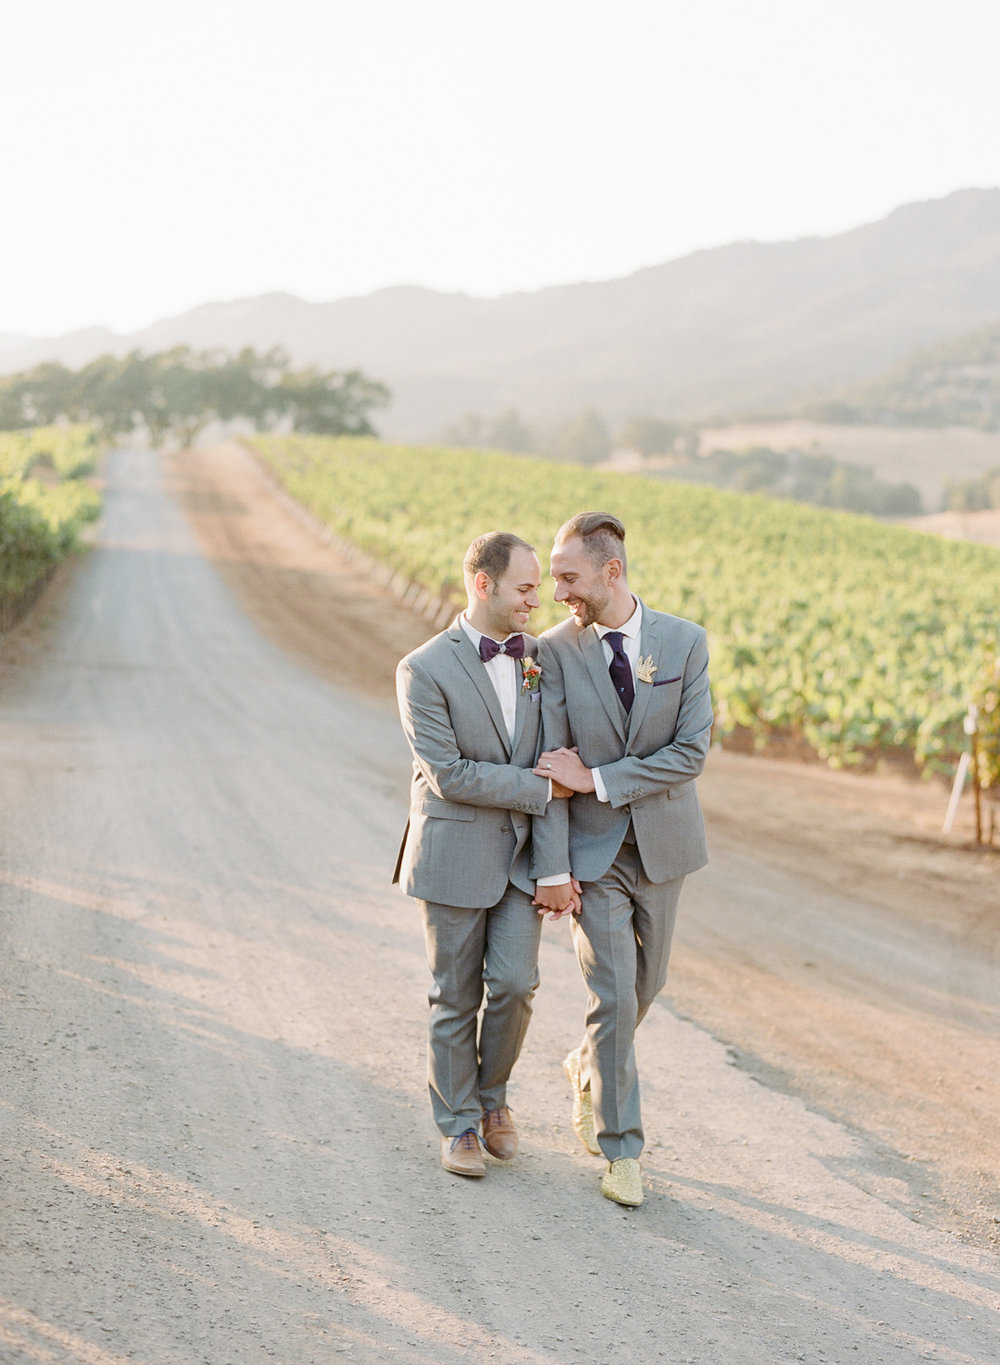 The grooms walk through the vineyard at Kunde Winery at sunset after their wedding; Sylvie Gil Photography